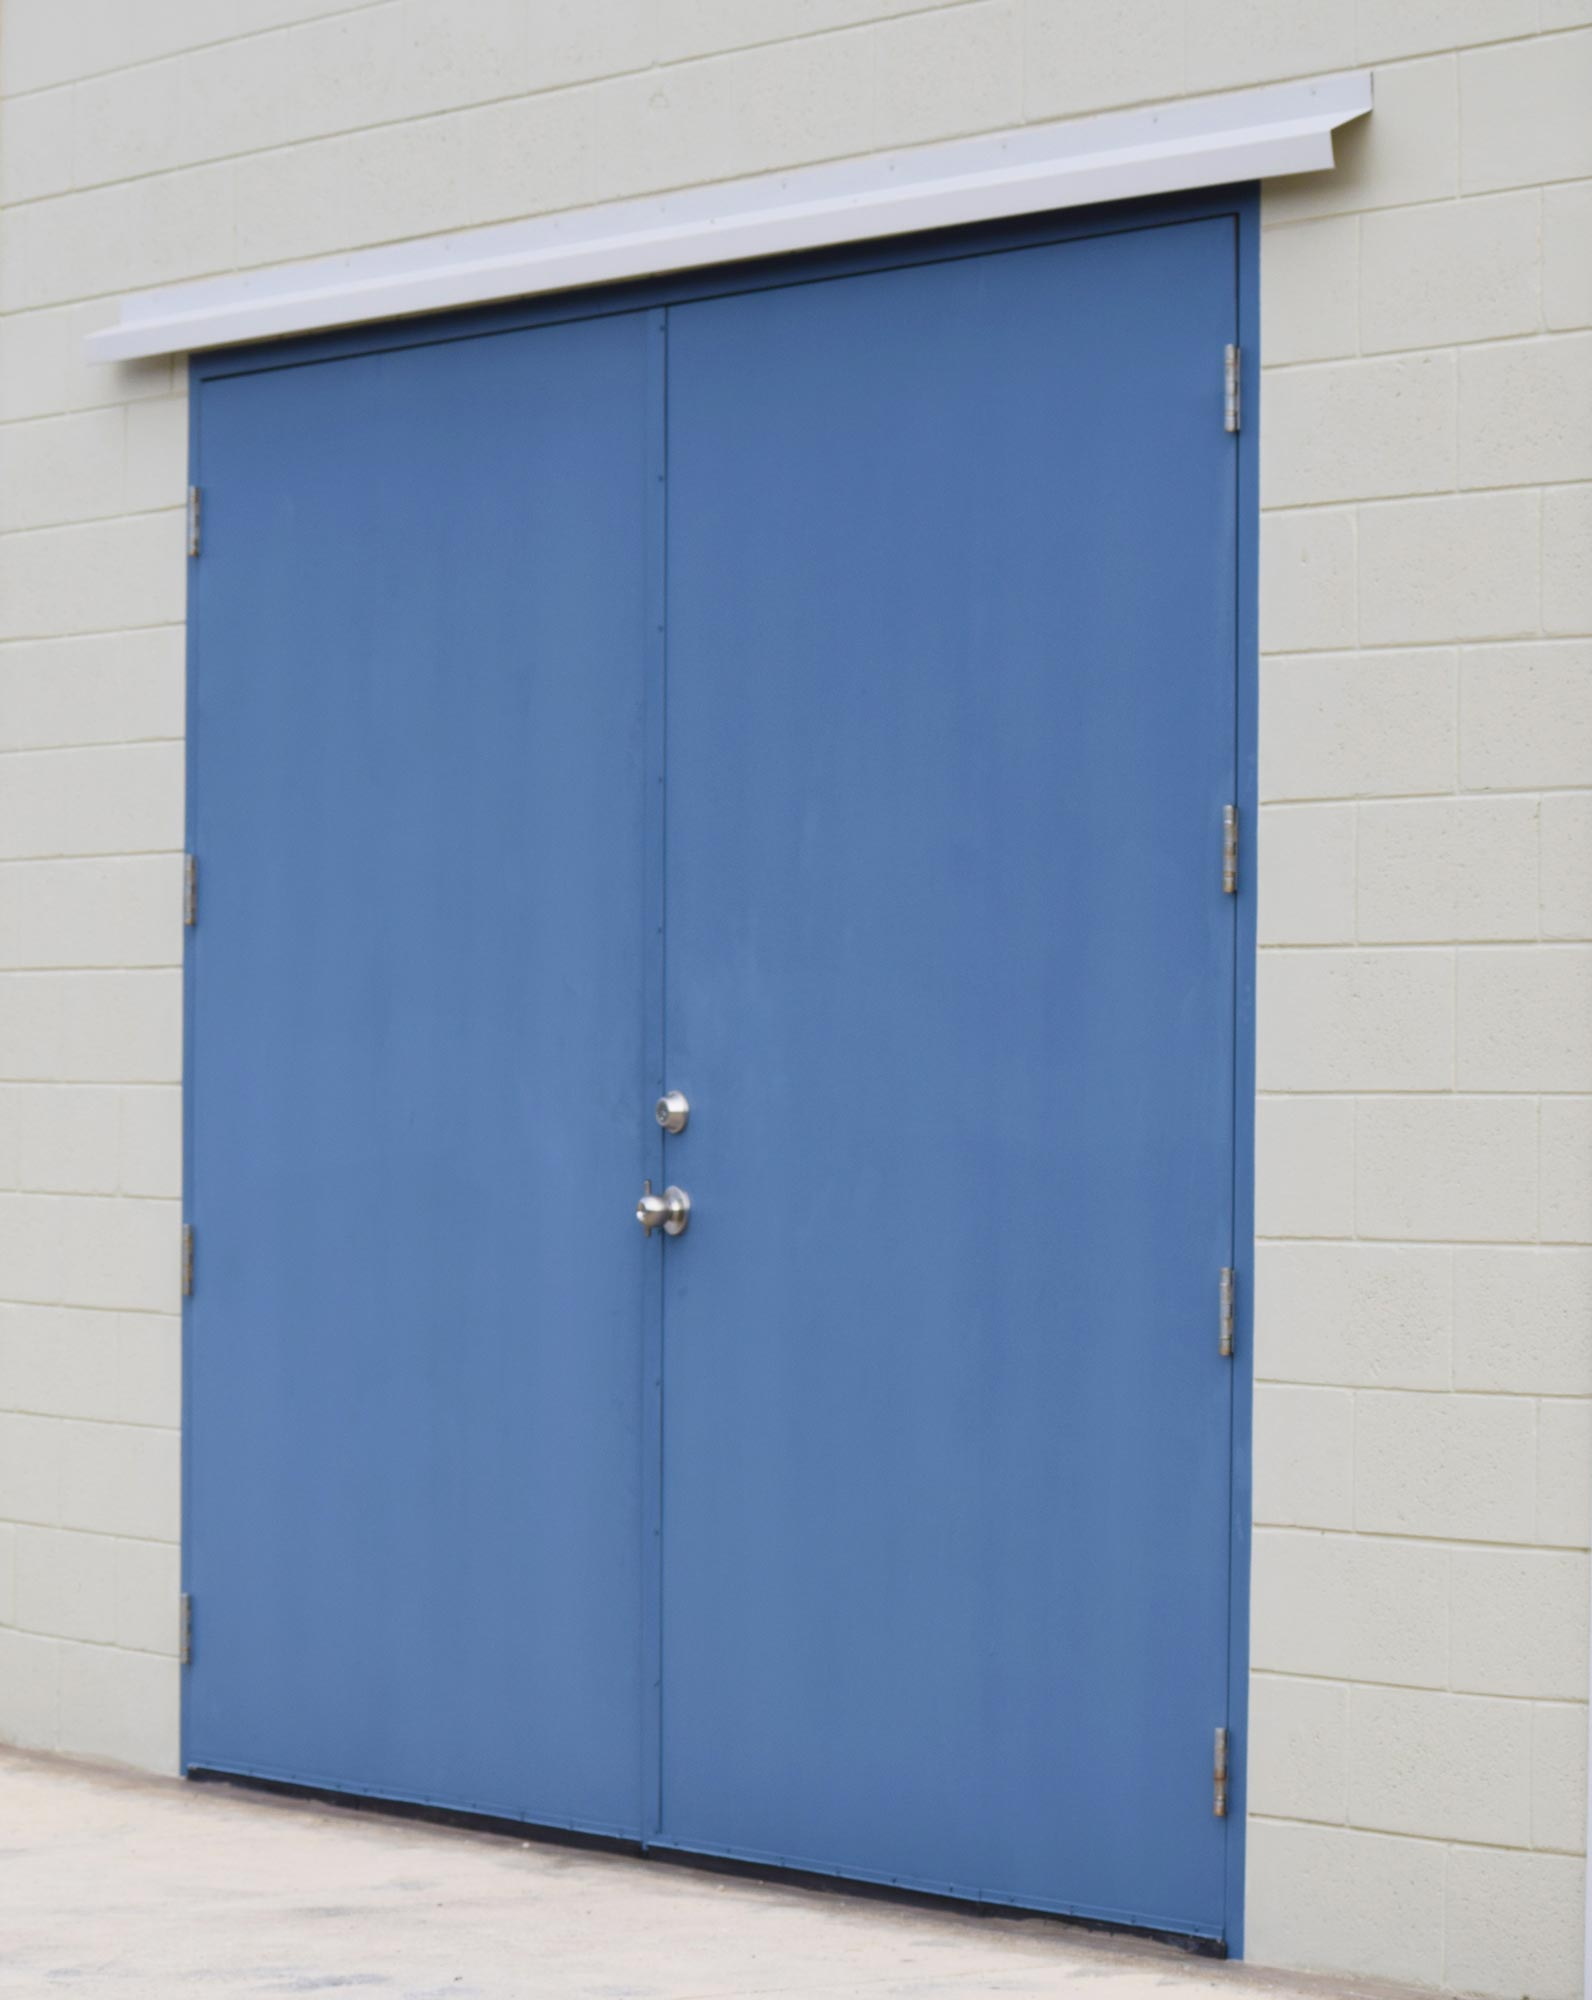 2000 #33486A Custom Made Steel Doors Supplied By LAMCO LAMCO Industries Ltd. In  save image Custom Made Steel Doors 46671592